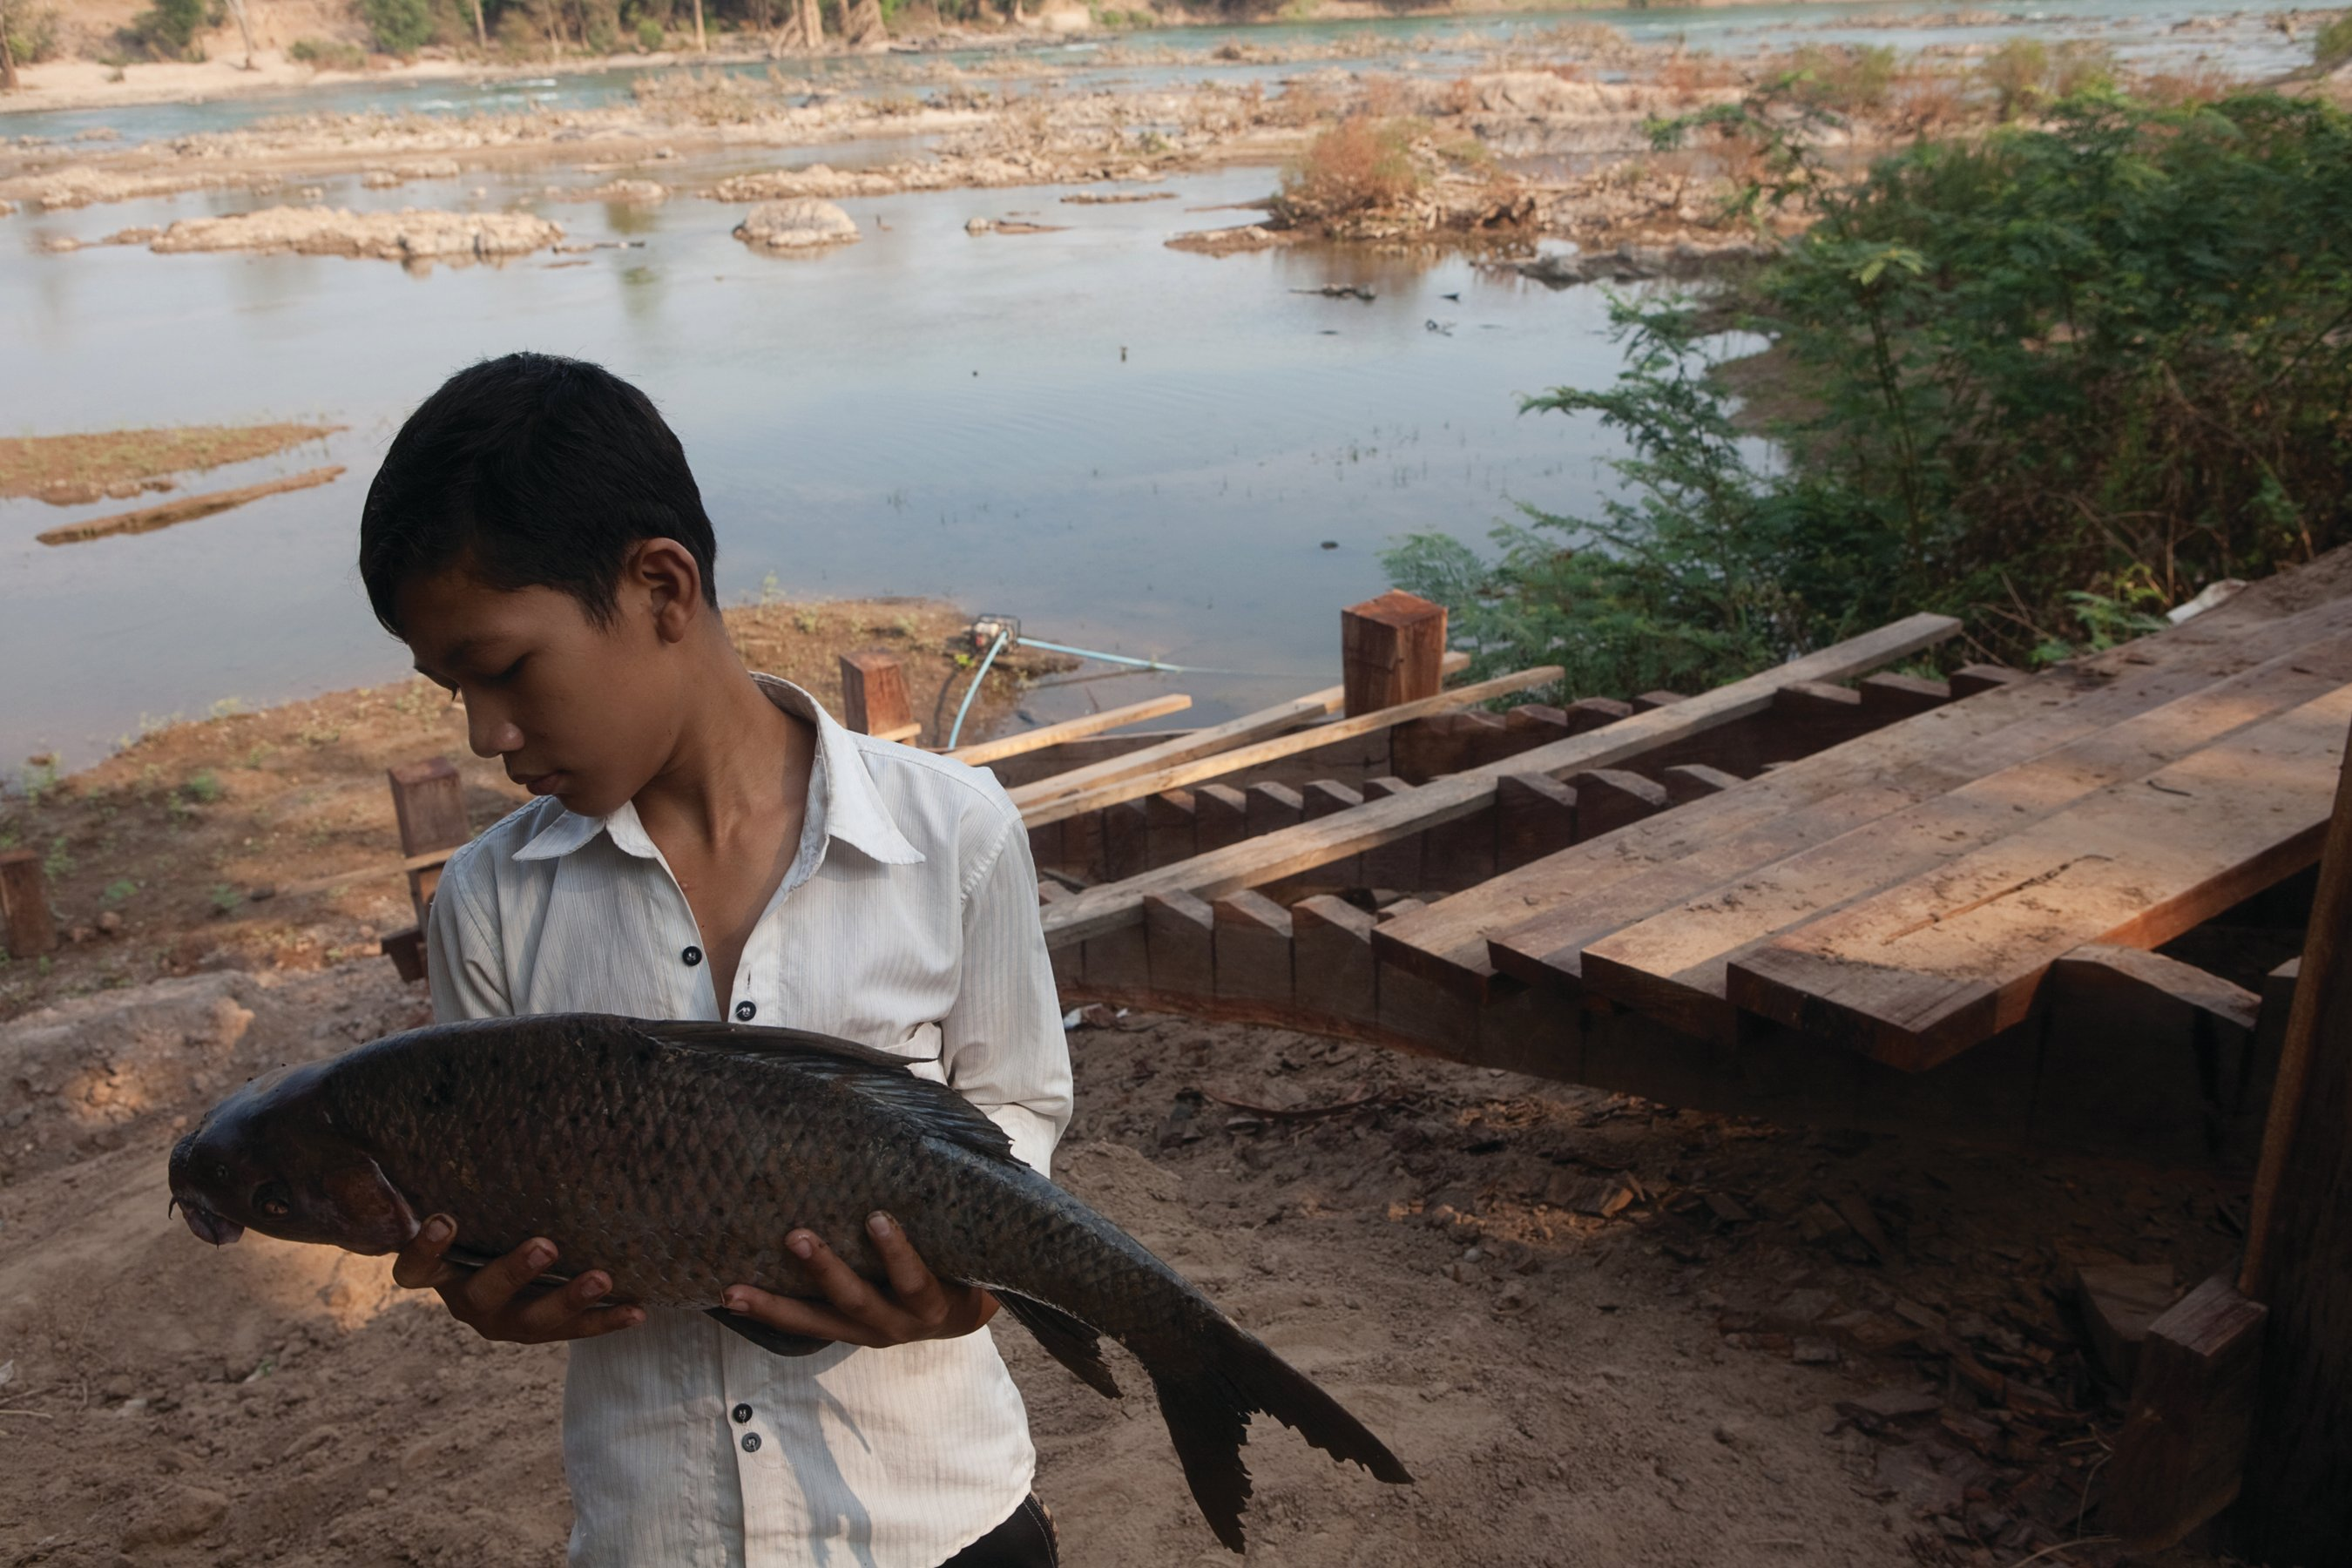 A young boy holds a fish in rural Cambodia. Despite strong economic growth, much of the country remains dependent on a rural economy and natural resources